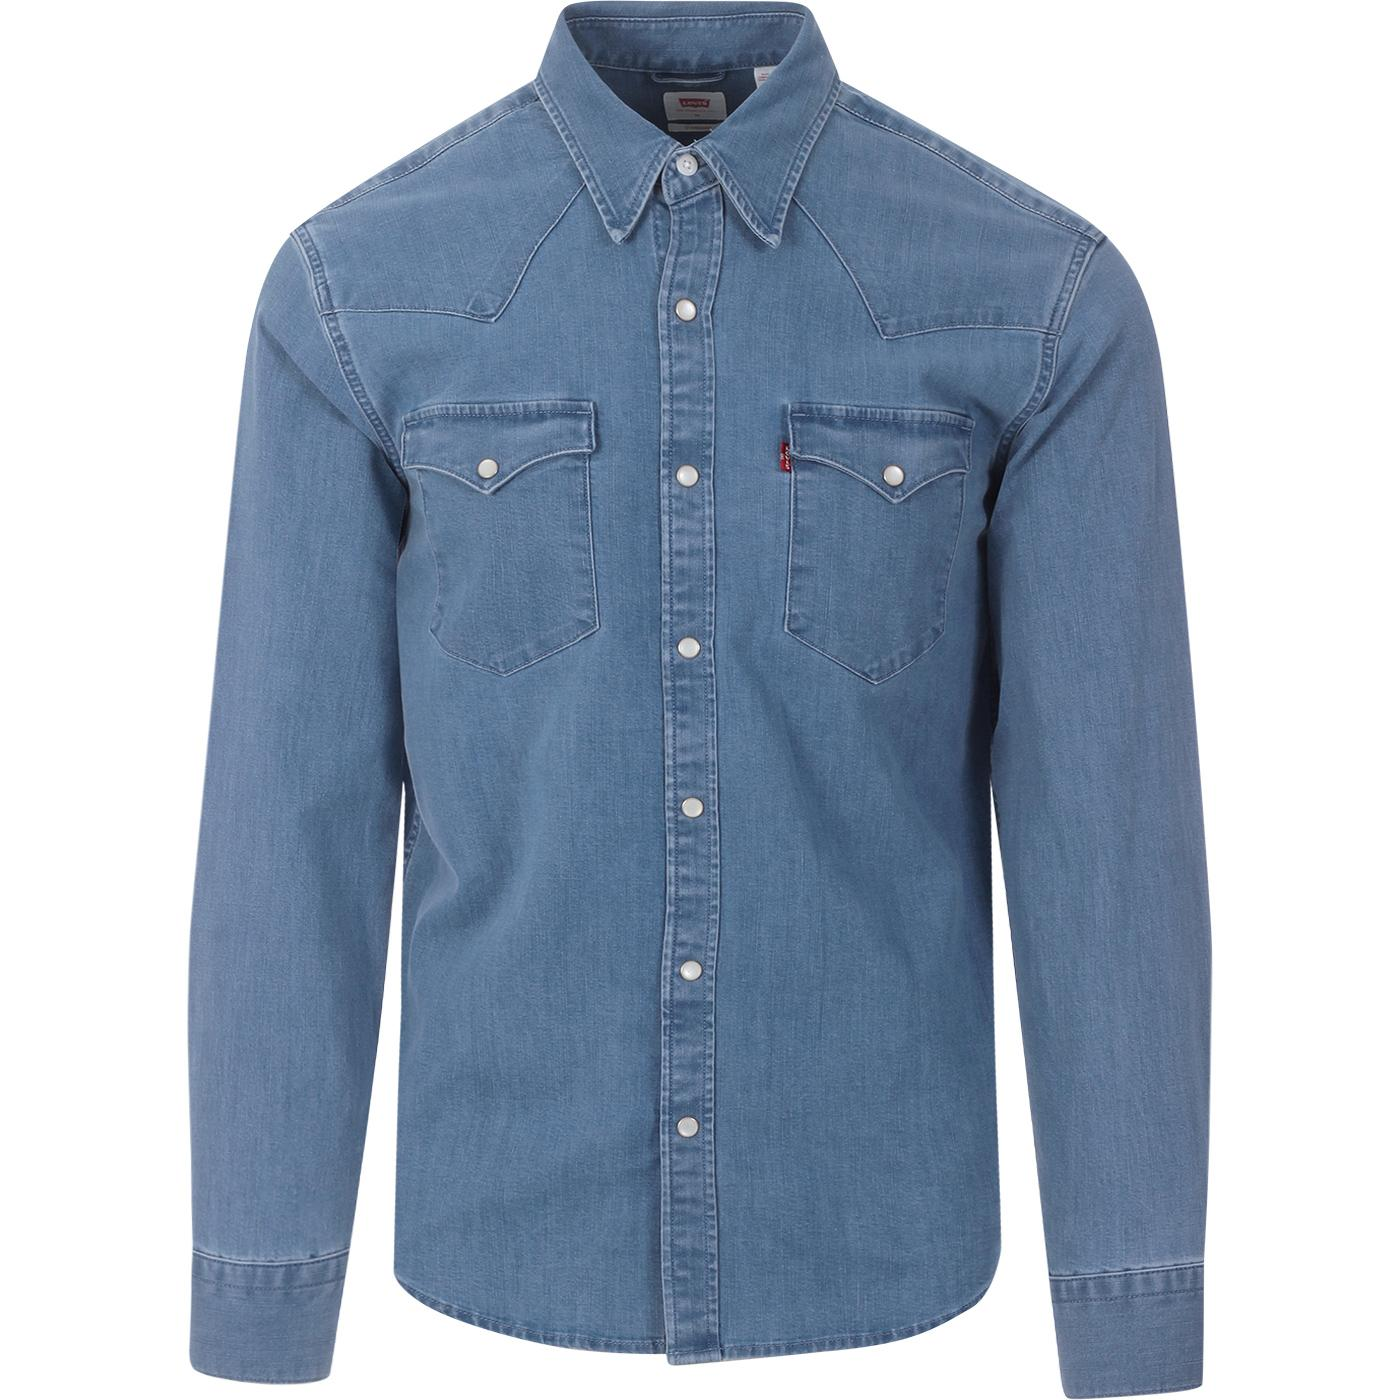 Barstow LEVI'S Western Slim Shirt (Light Wash)